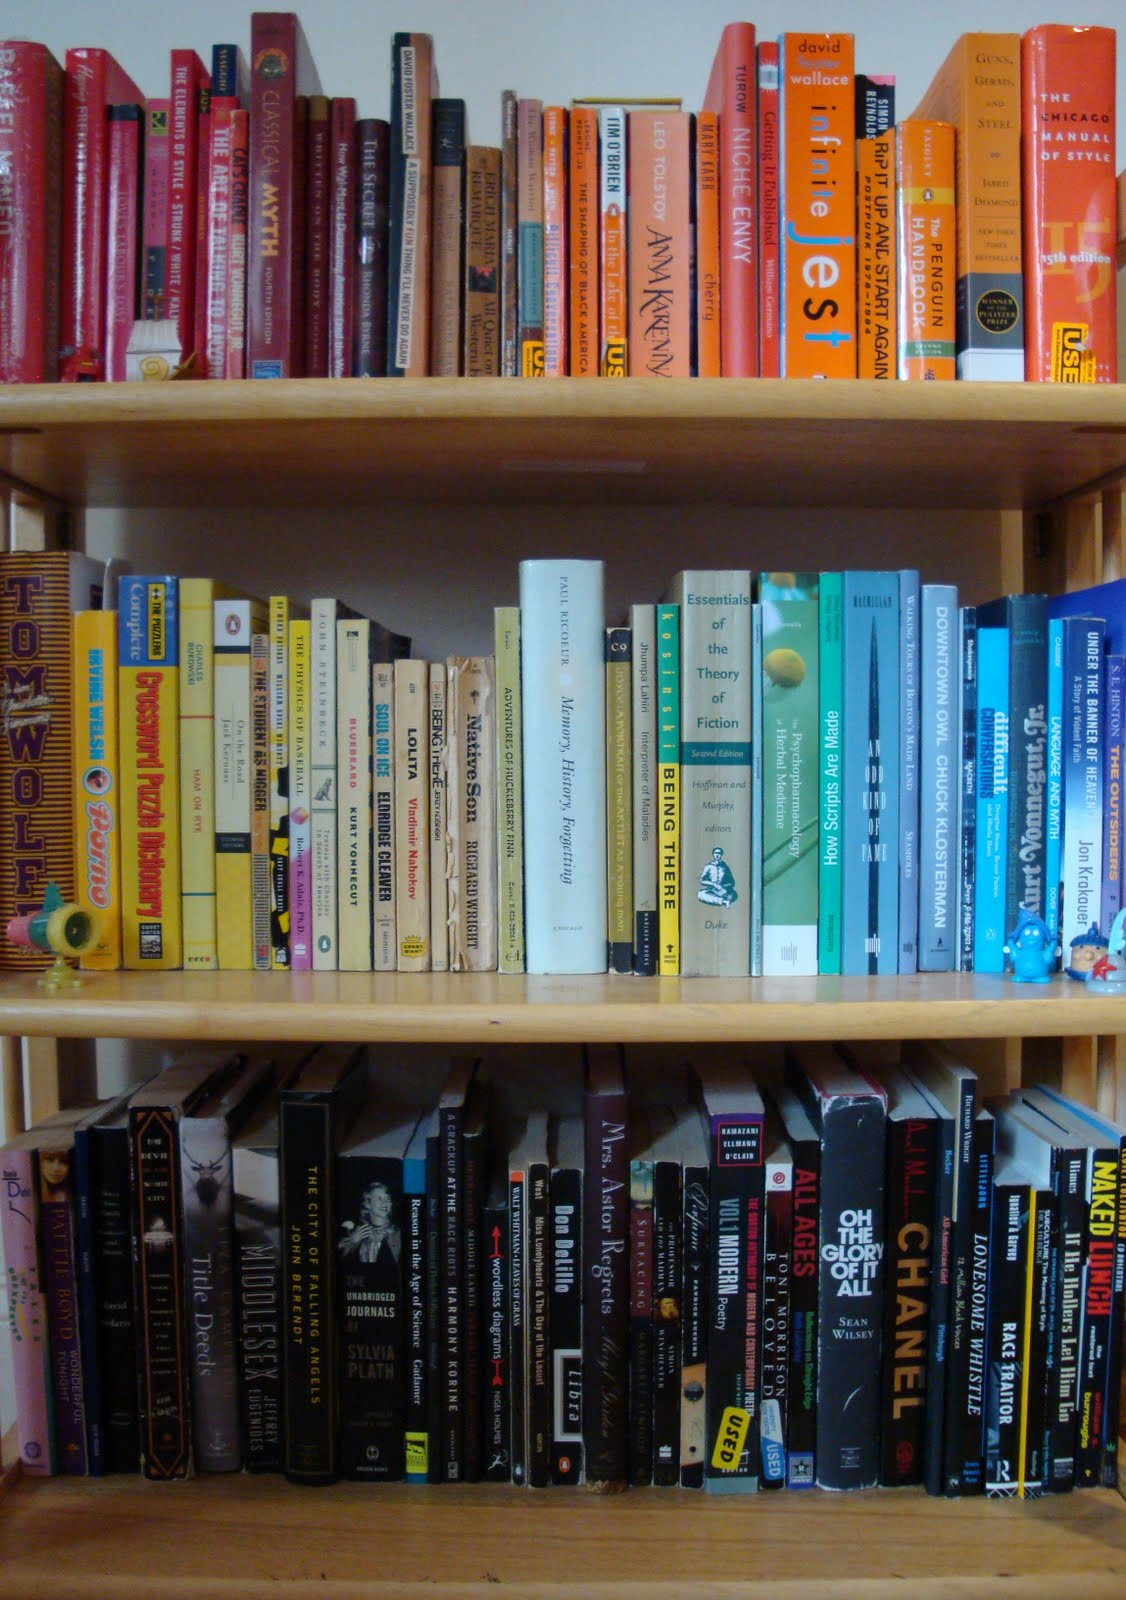 Bookshelves color - I Love The Looks Of These Color Coordinated Bookshelves It Makes Me Want To Buy A Huge Bookshelf And Fill It With Colorful Books